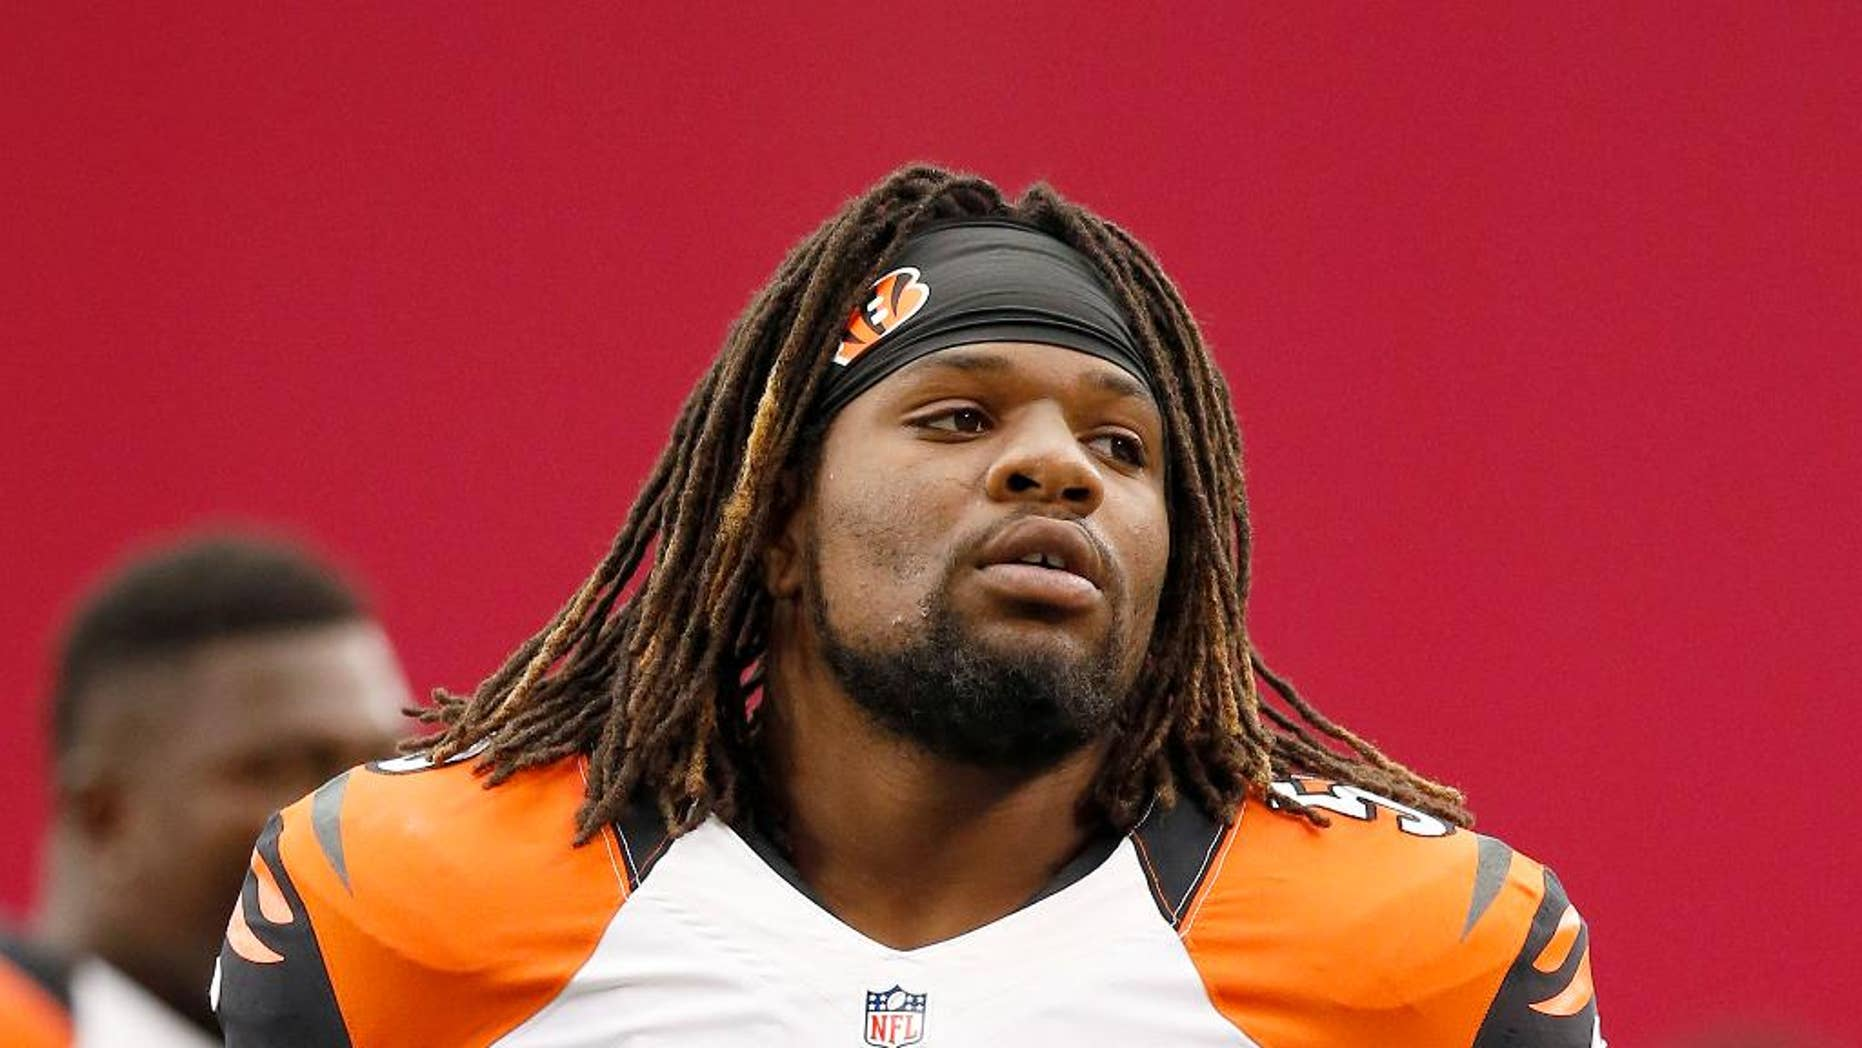 FILE - In this Aug. 24, 2014, file photo, Cincinnati Bengals' Vontaze Burfict stretches out with teammates prior to an NFL preseason football game against the Arizona Cardinals in Glendale, Ariz. Burfict had surgery to clean out his left knee on Wednesday, Oct. 29, 2014,  and will miss at least the next two games. (AP Photo/Ross D. Franklin, File)